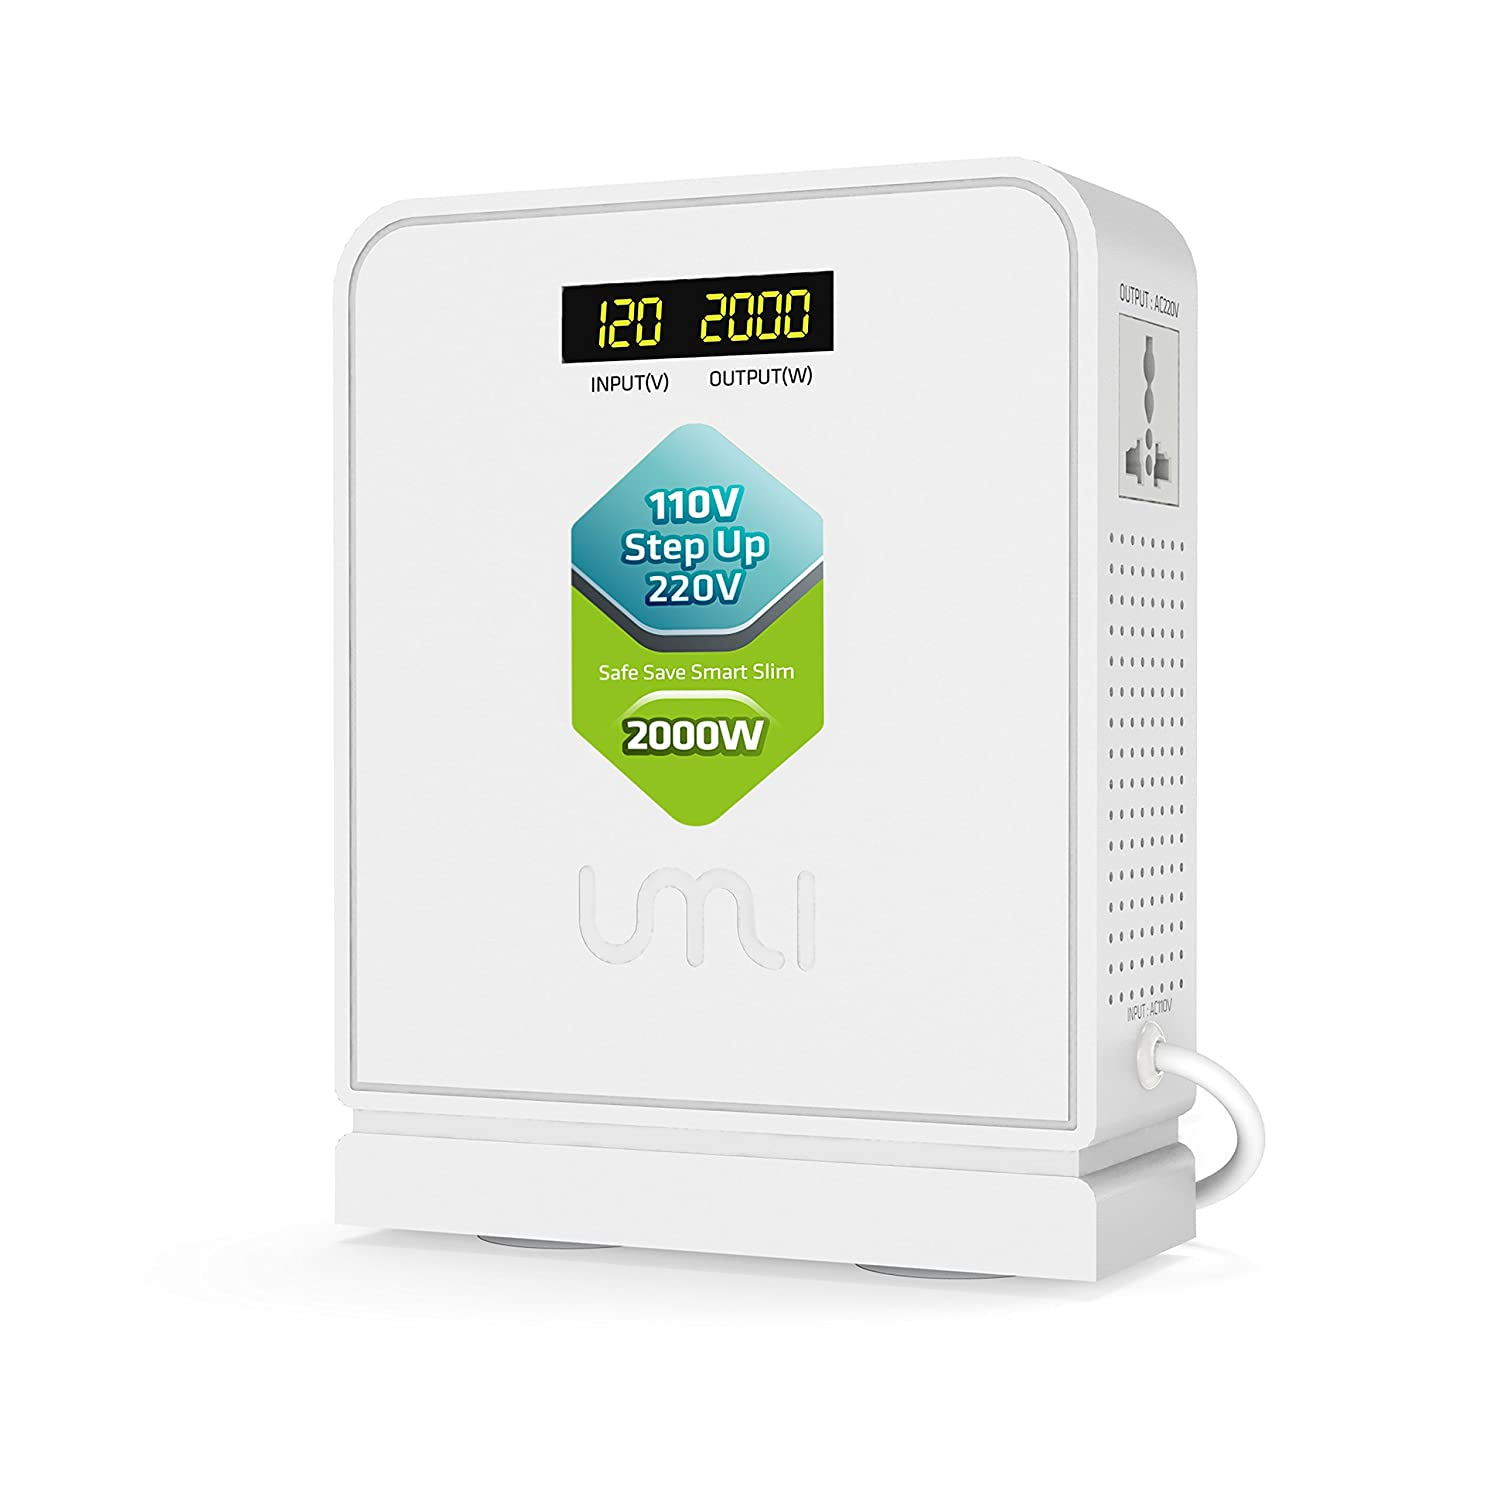 UMI Step Up 110V to 220V Voltage Converter 2000W with Surge Protection, Continuous Run at Full Load